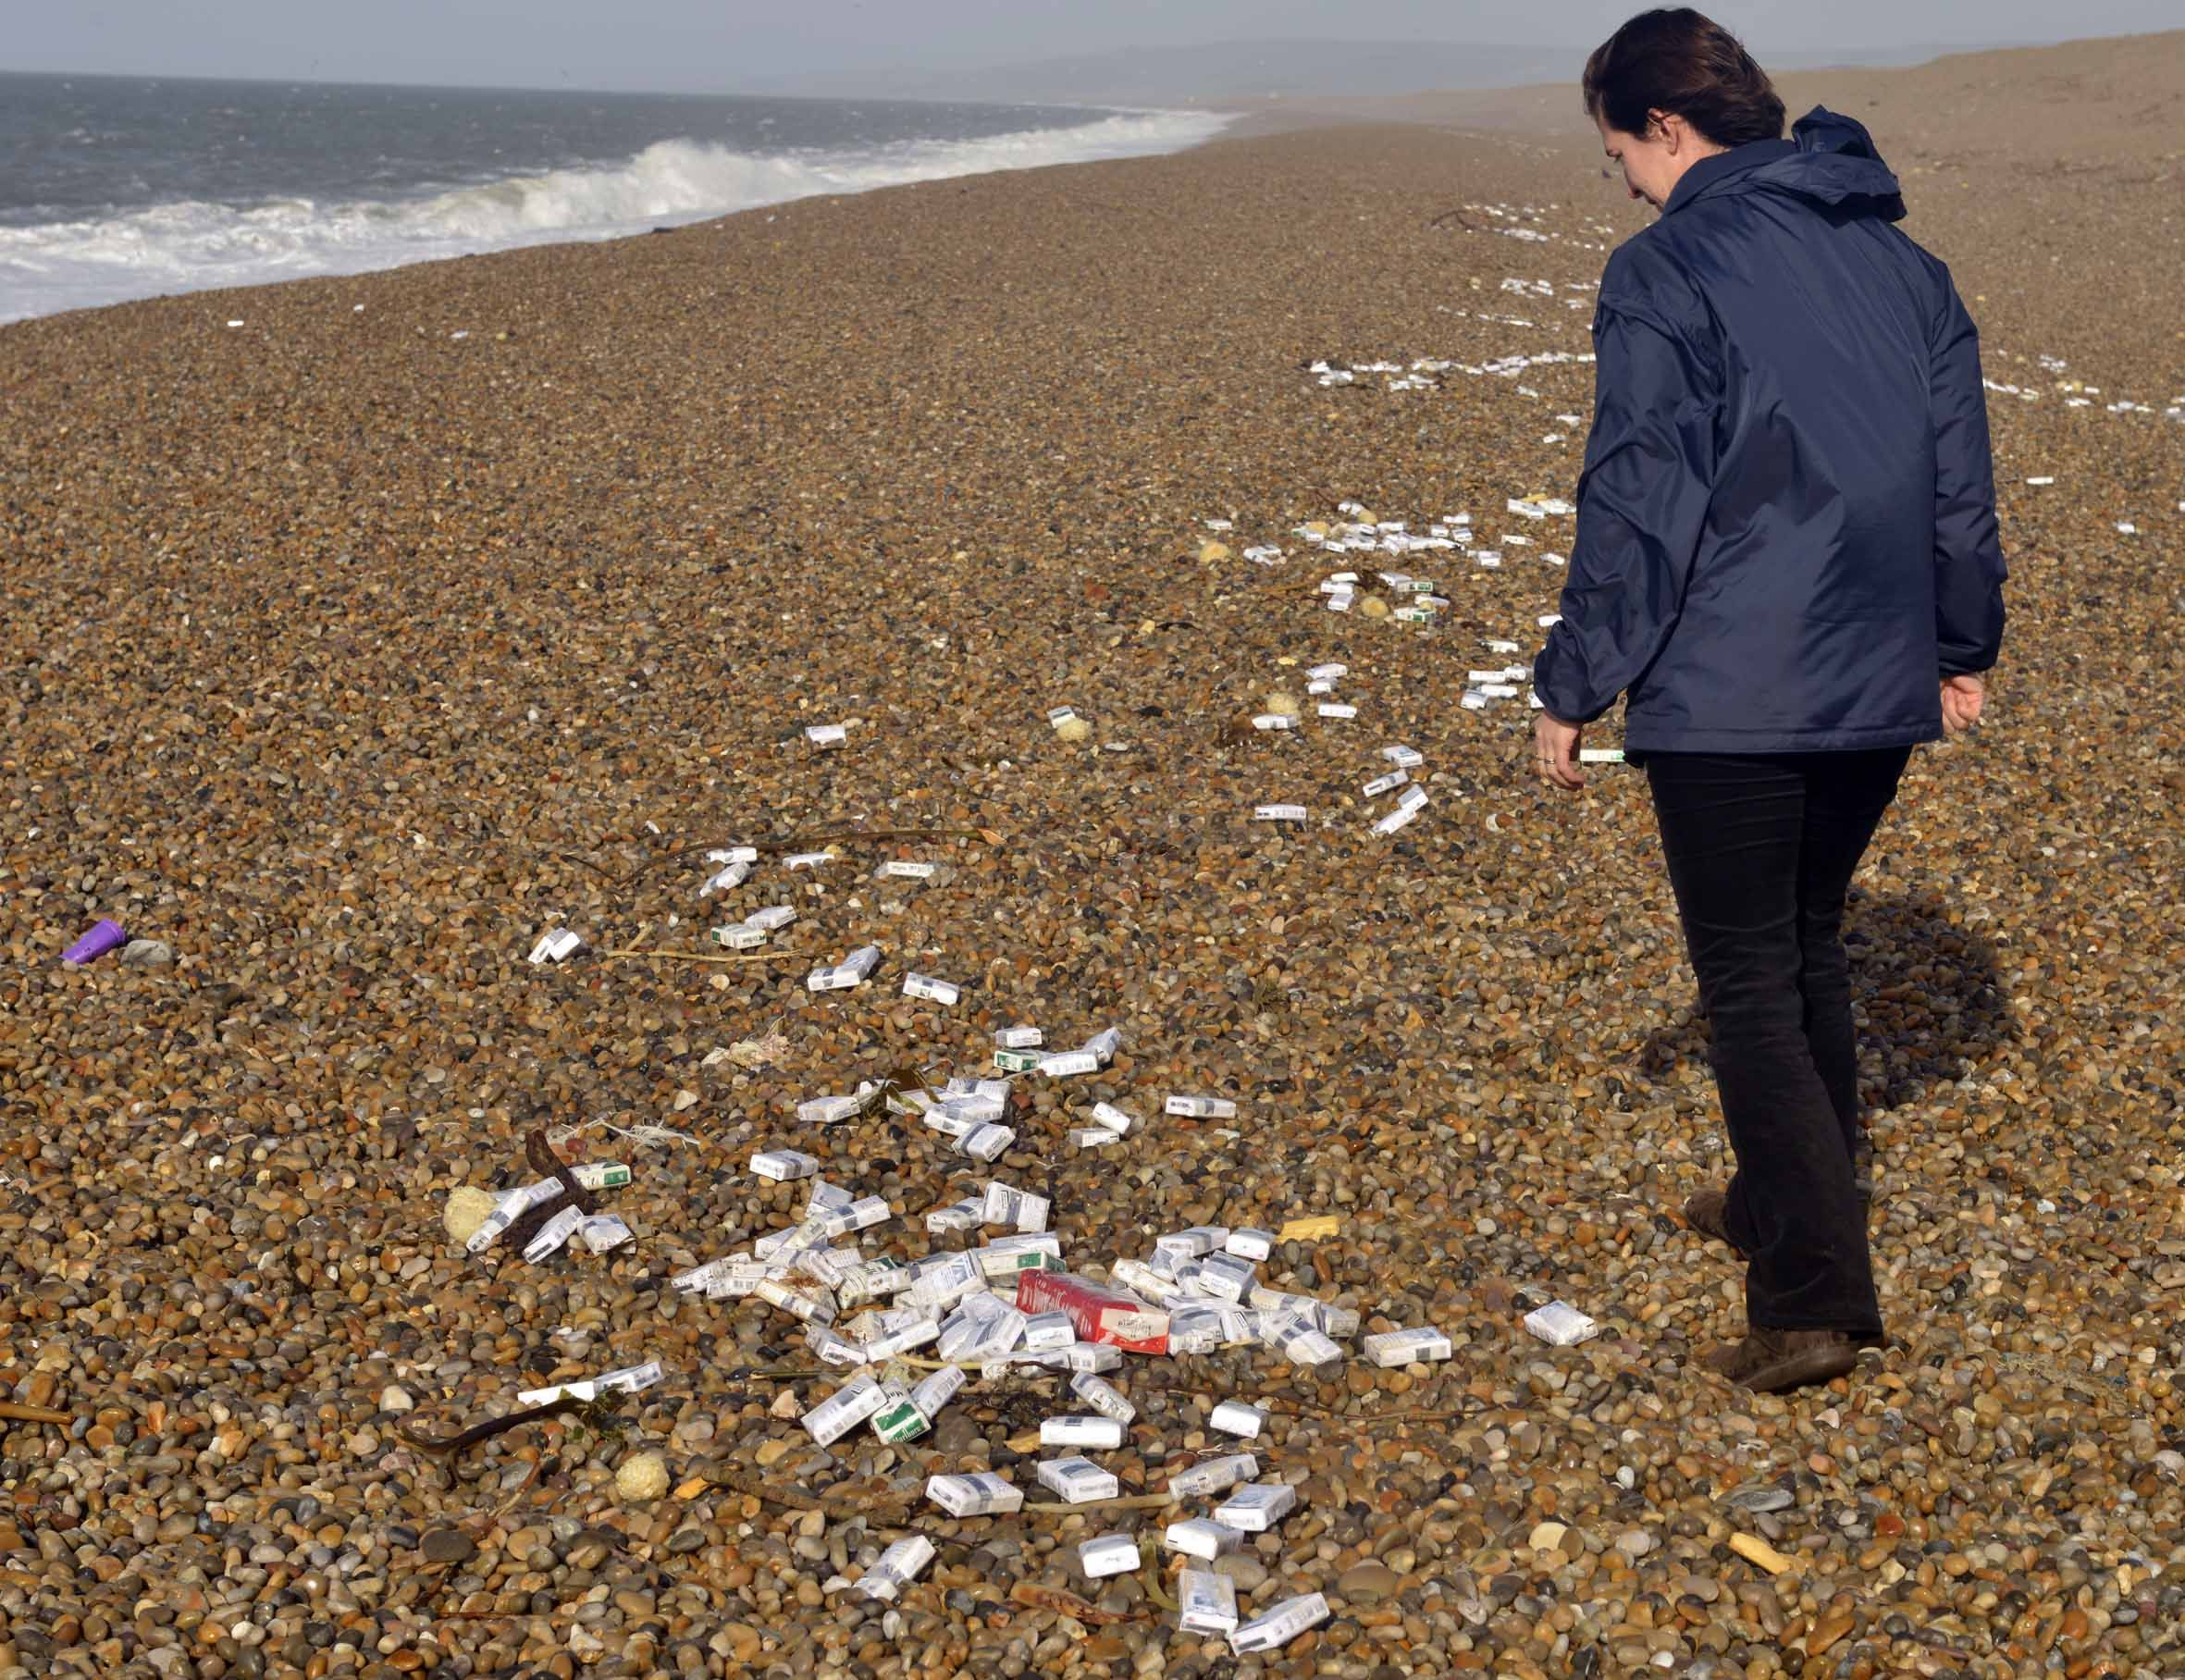 Thousands of cigarette packs wash up on Chesil Beach